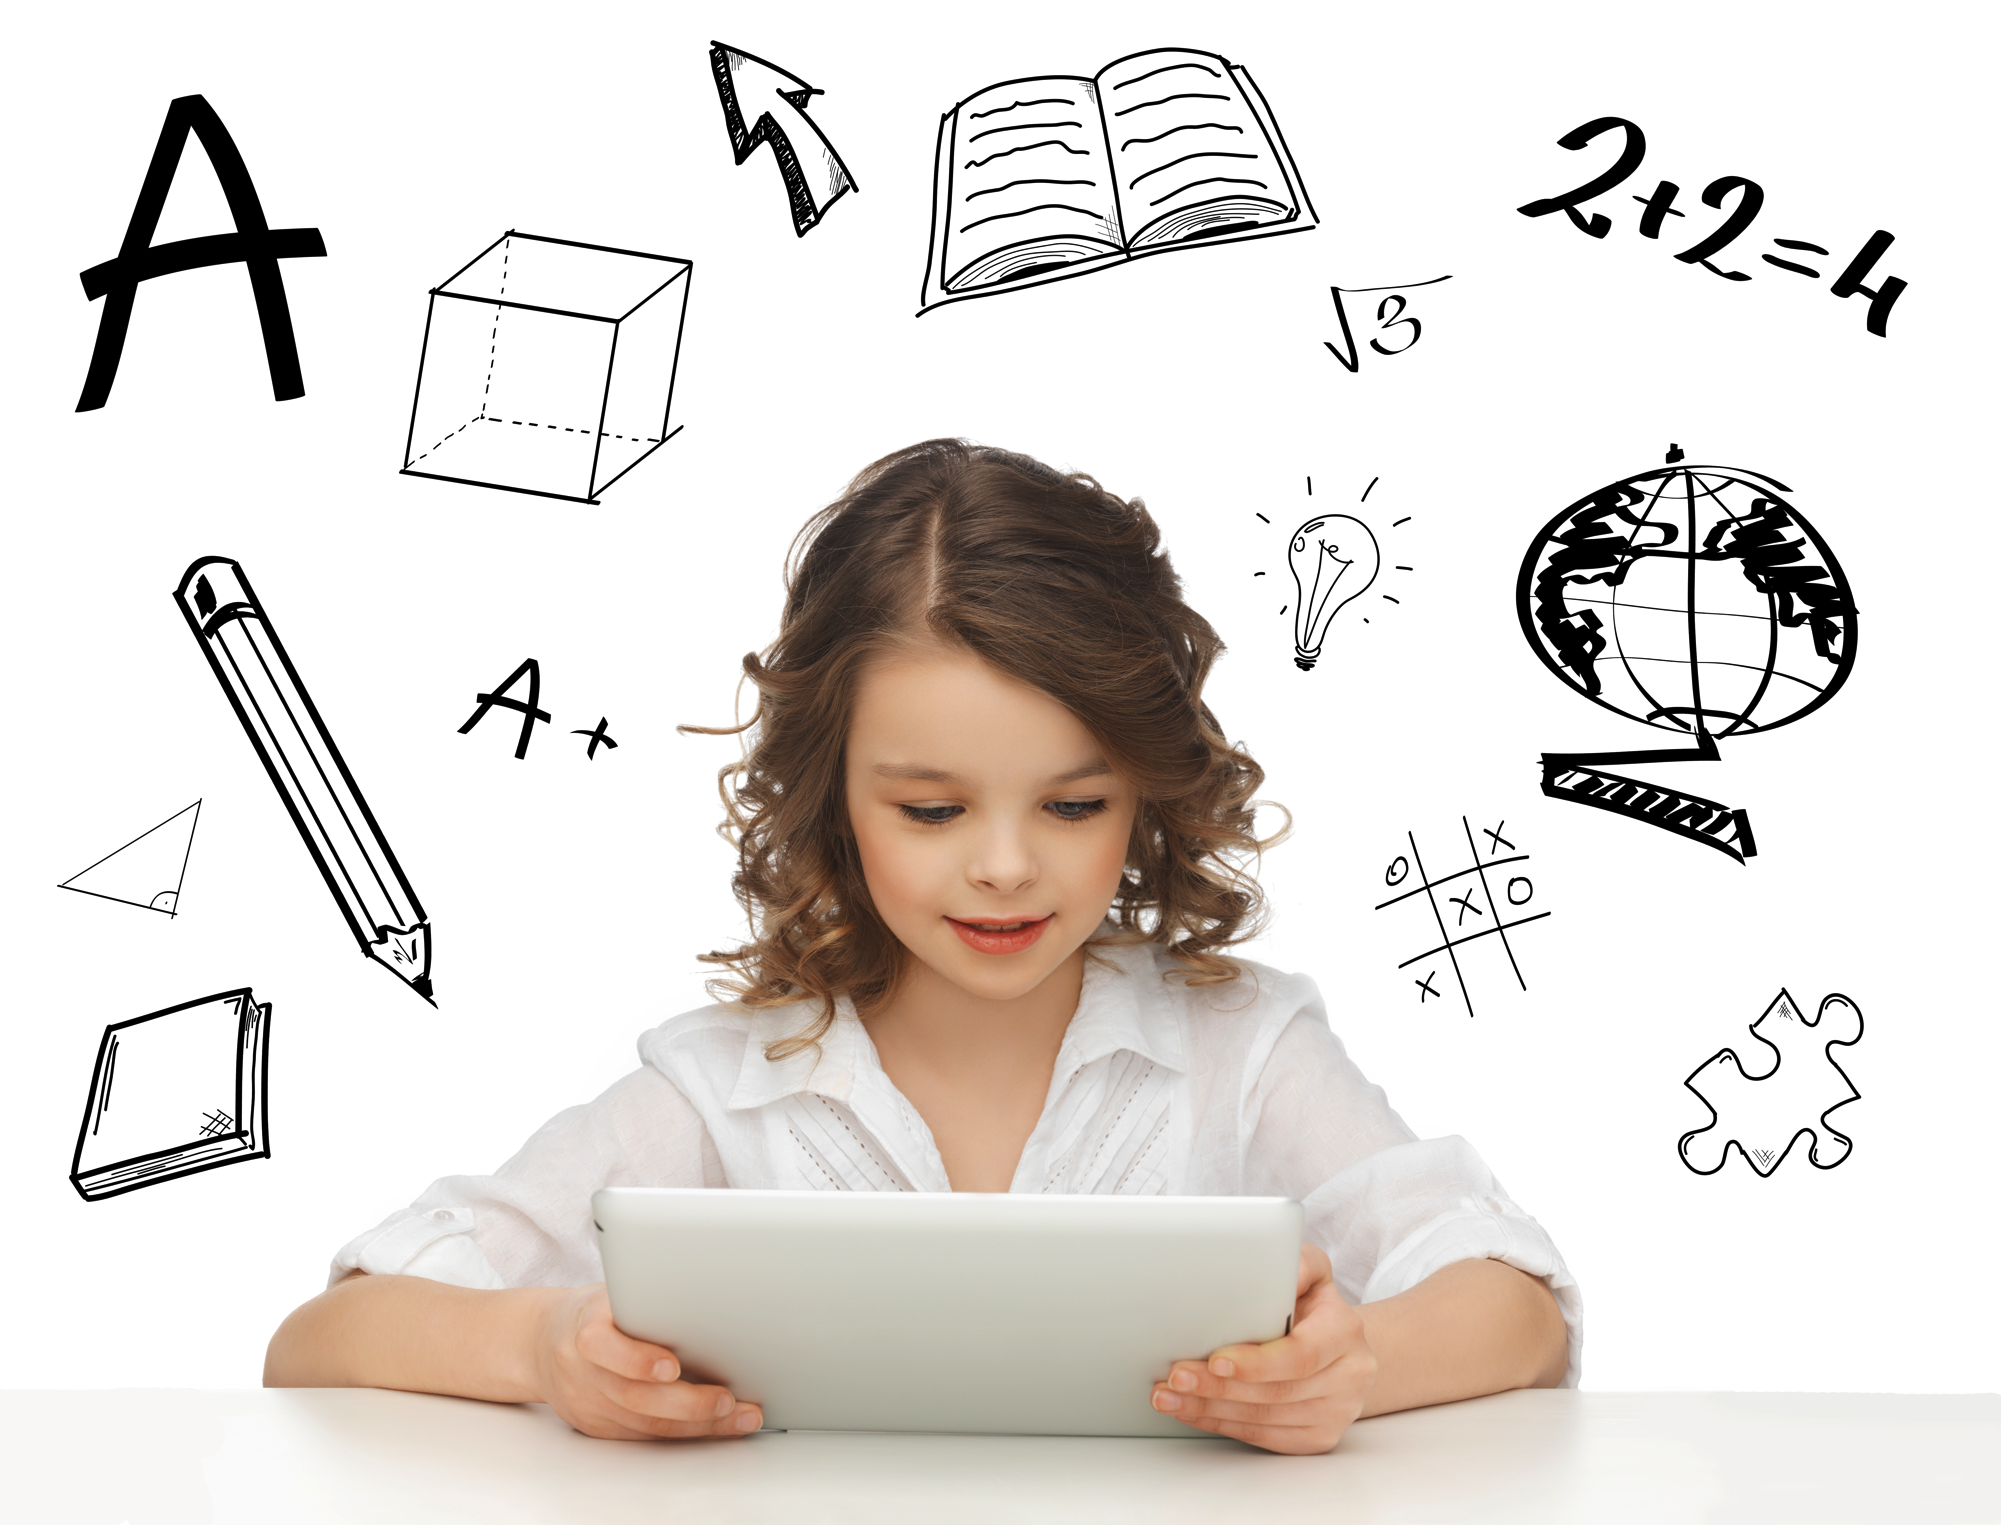 Need for an alternative search engine for education